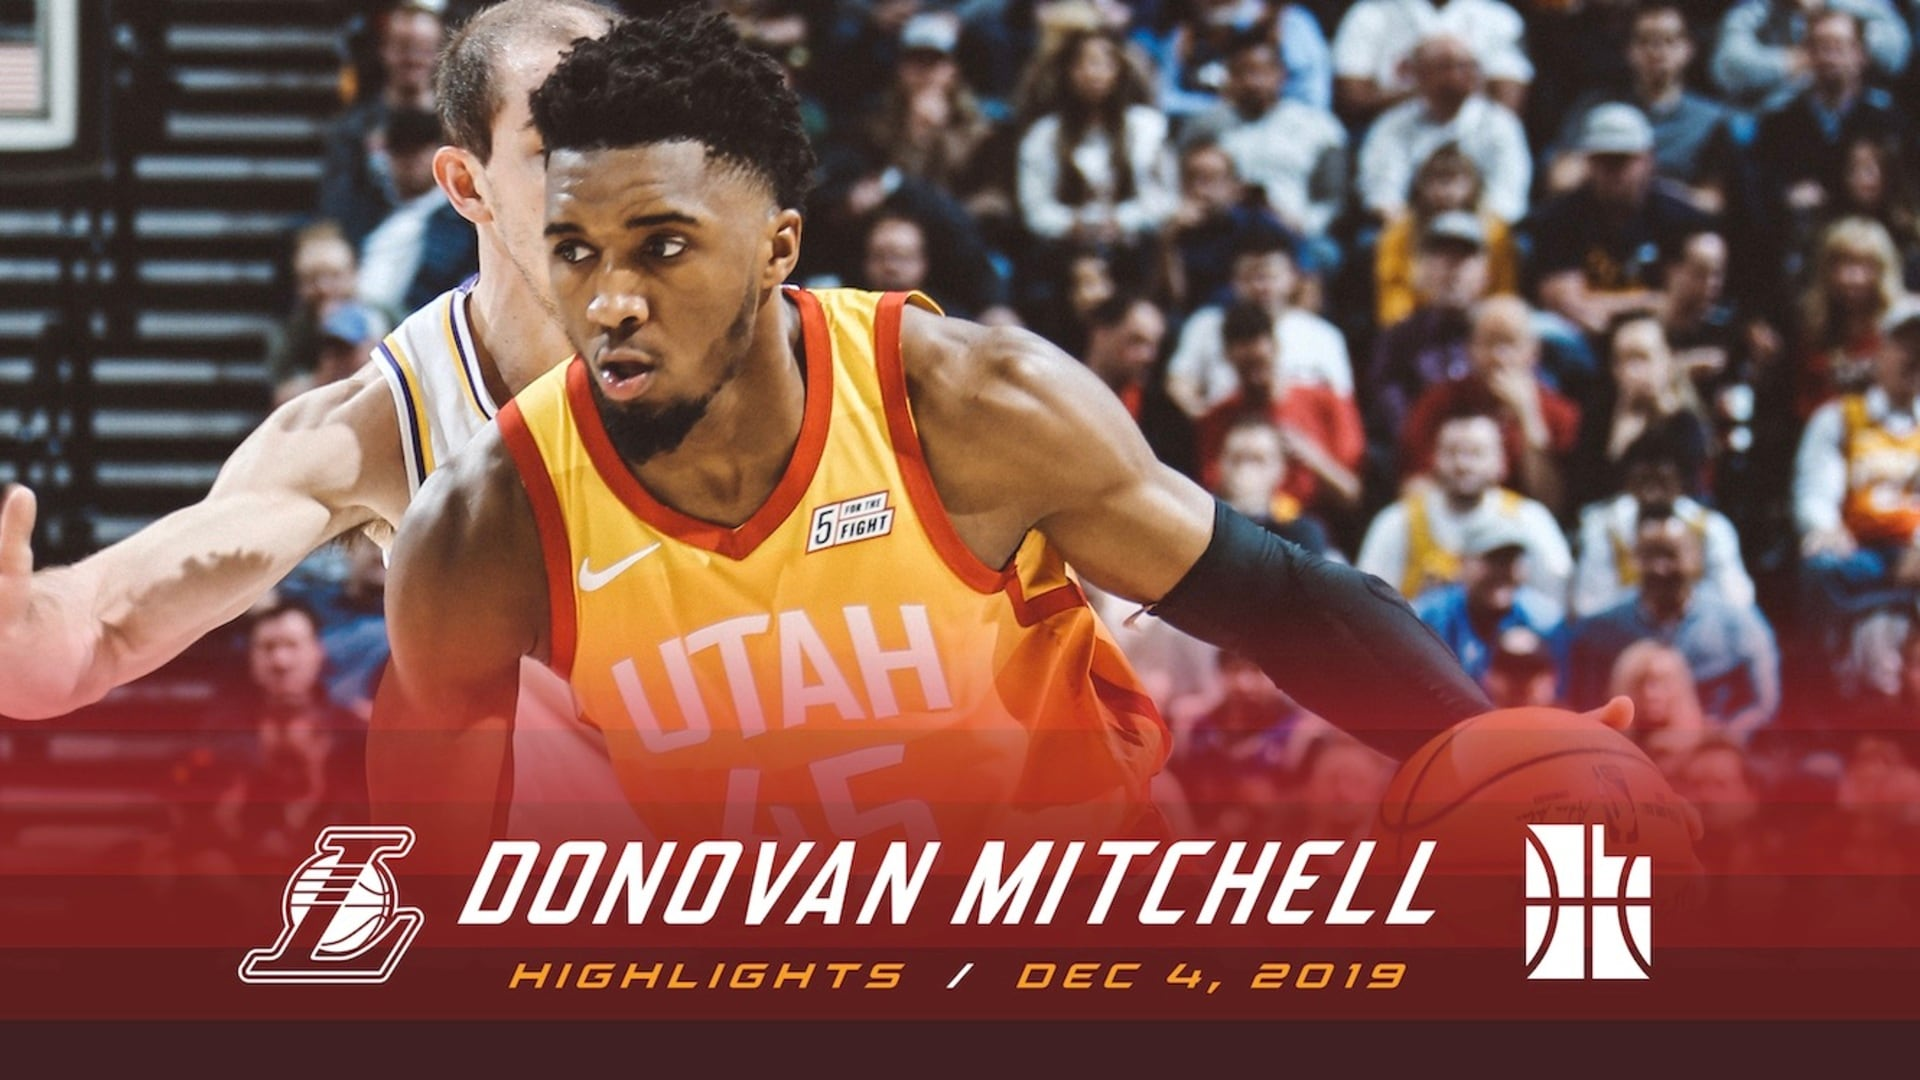 Highlights: Donovan Mitchell — 29 points, 5 assists